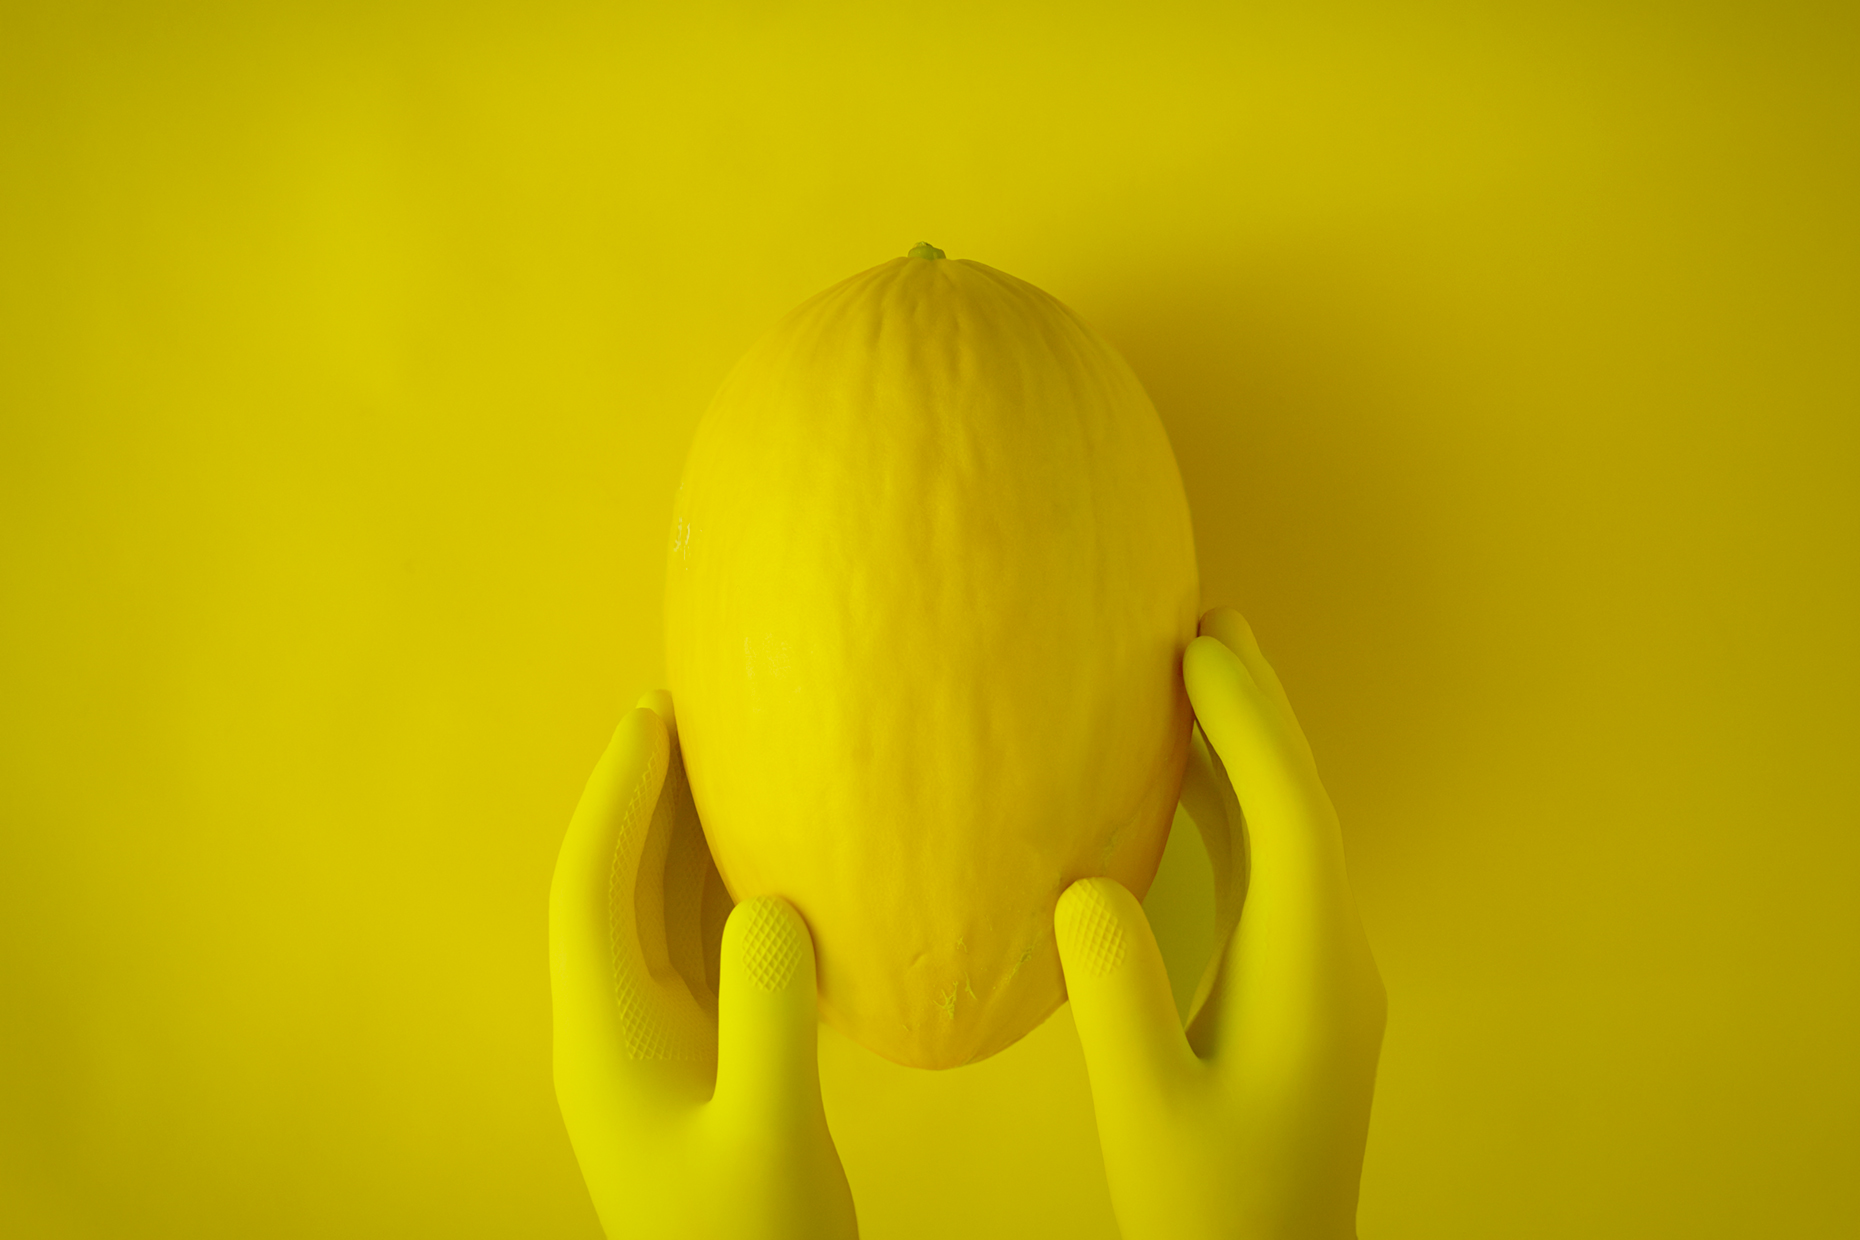 Vegetable_Hands_YELLOW_V1.jpg